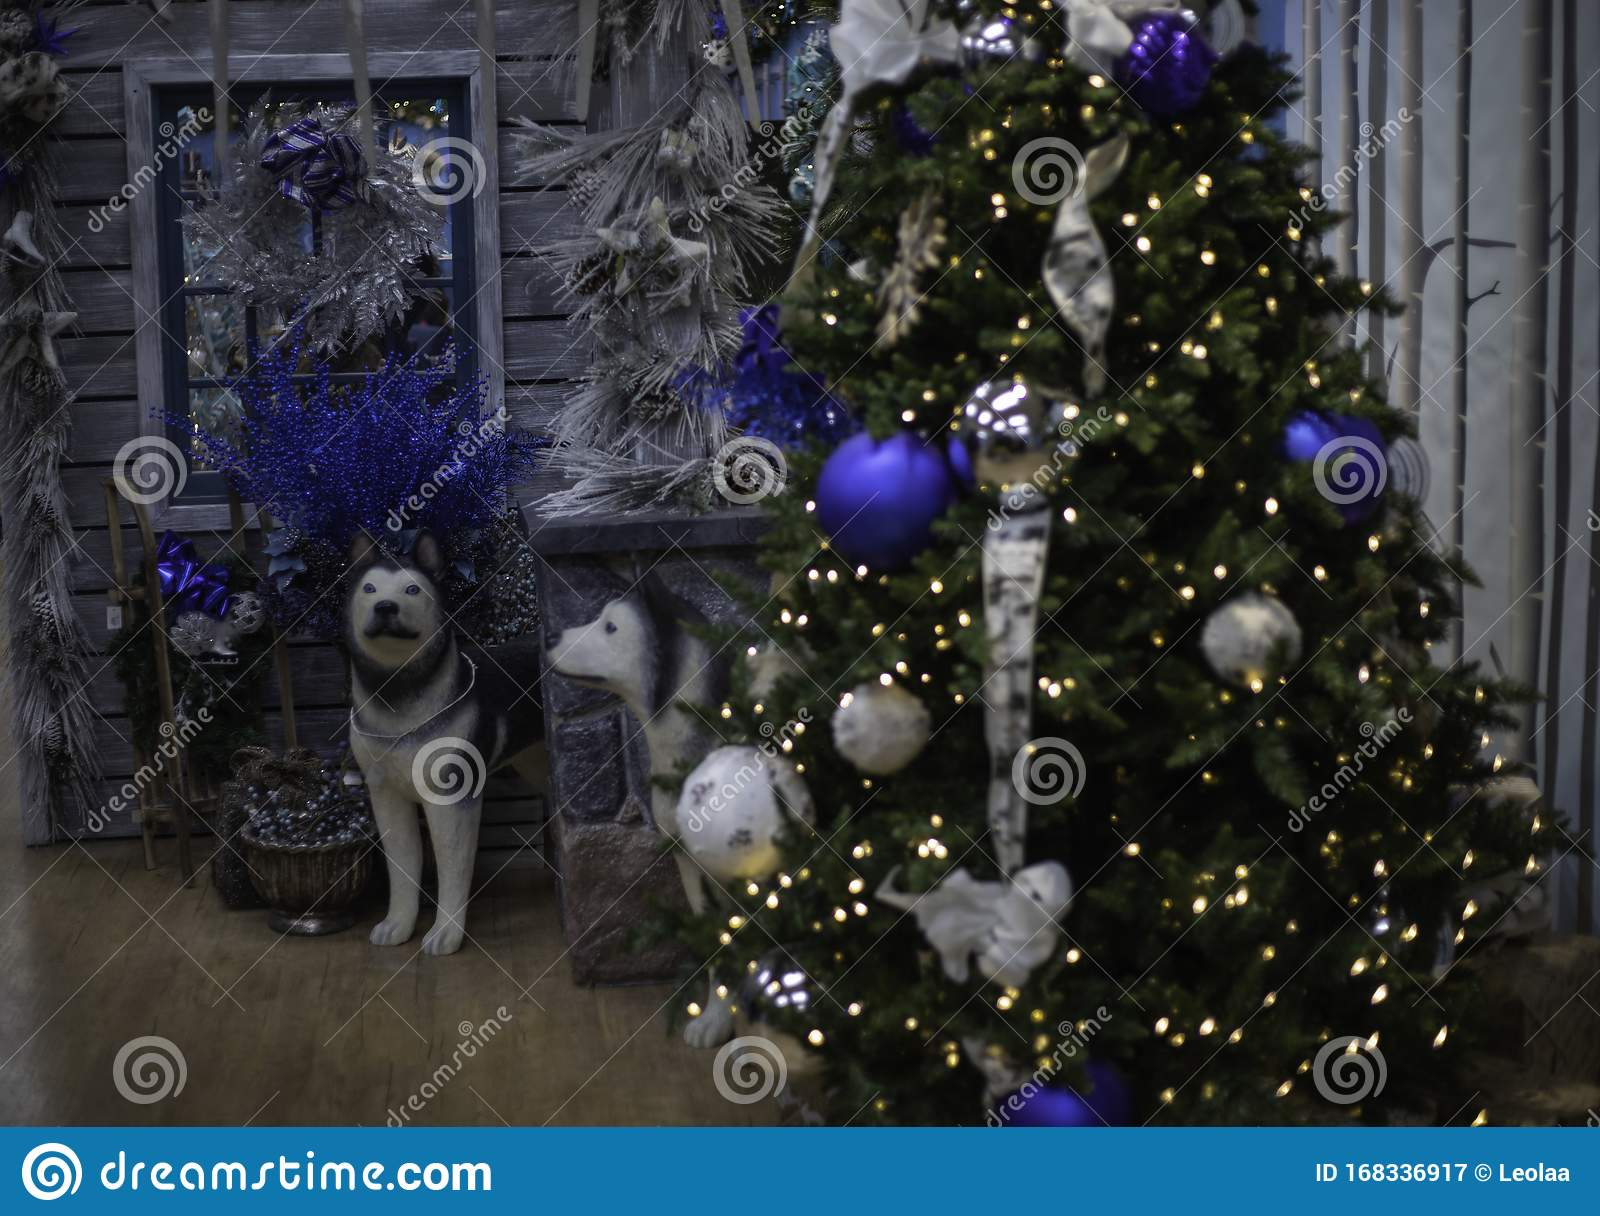 Christmas Decorations Of Blue And Grey Stock Image Image Of Balls Stands 168336917